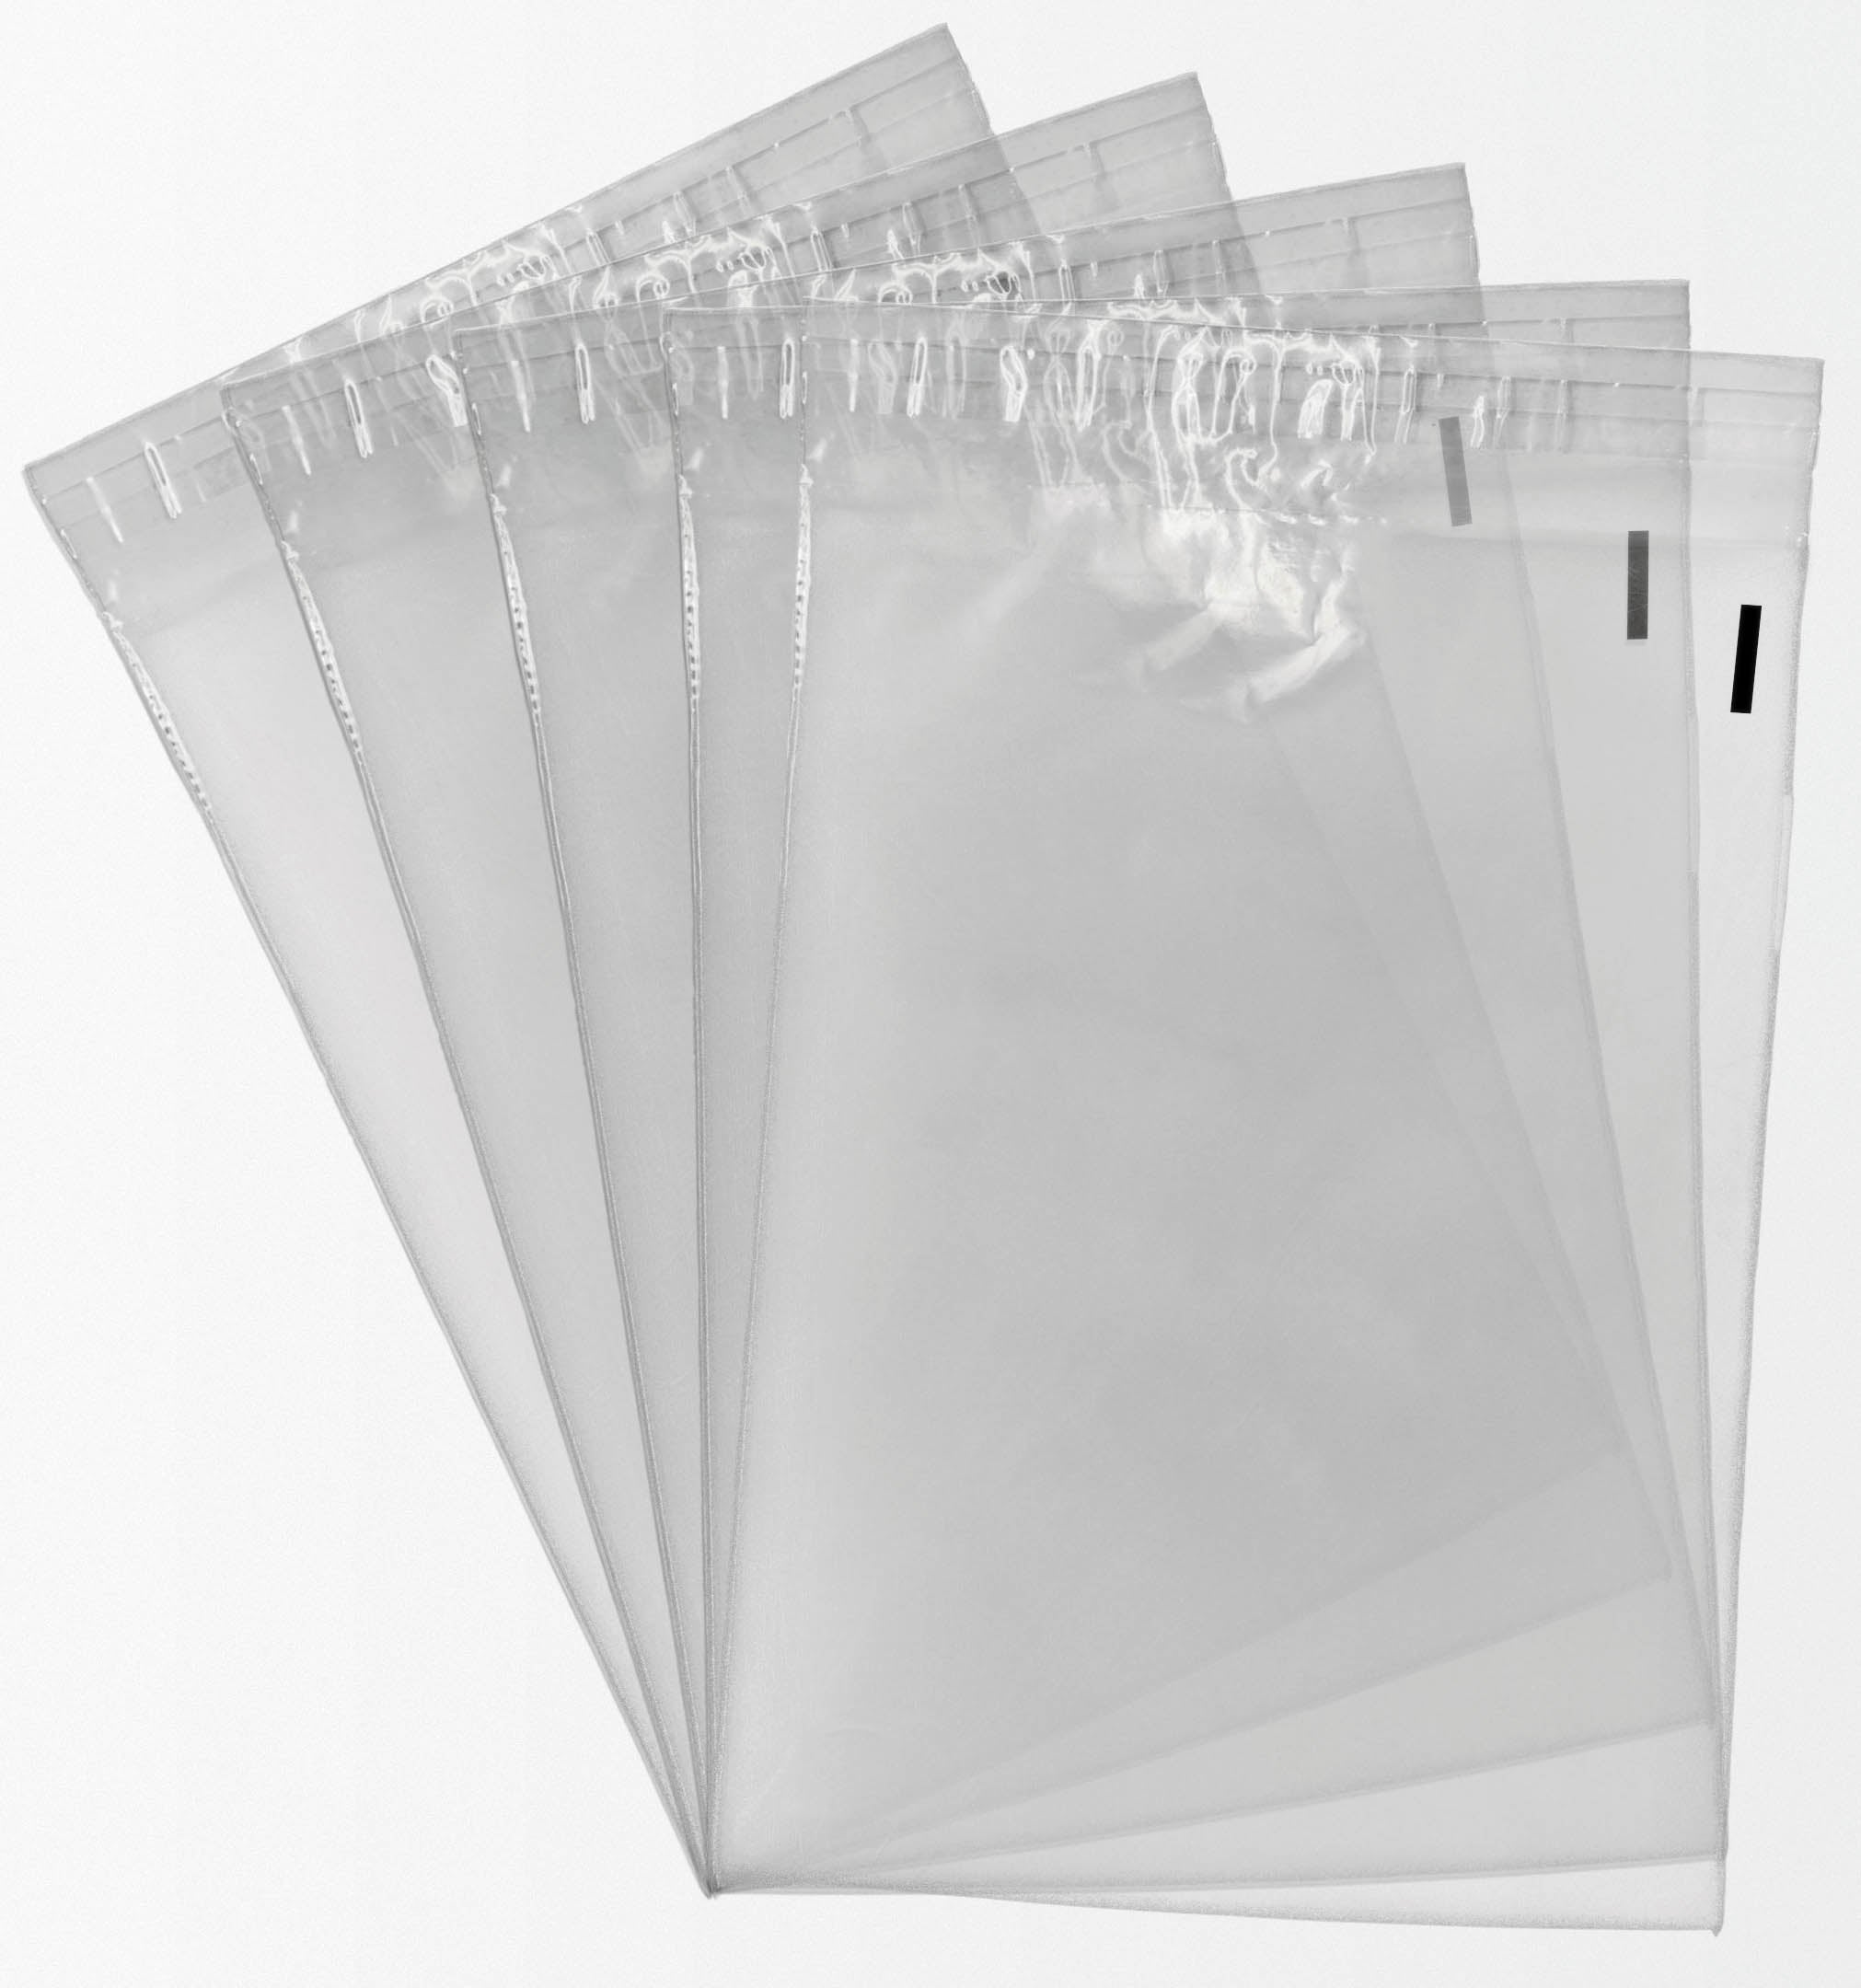 6x9 8x10 9x12 11X14 14X20 I Suffocation Warning in 9 Language for USA and International Seller I Resealable I 100 Count 11X14 Ready to Ship Clear Self Seal Poly Bags 1.5 Mil I Size Choices